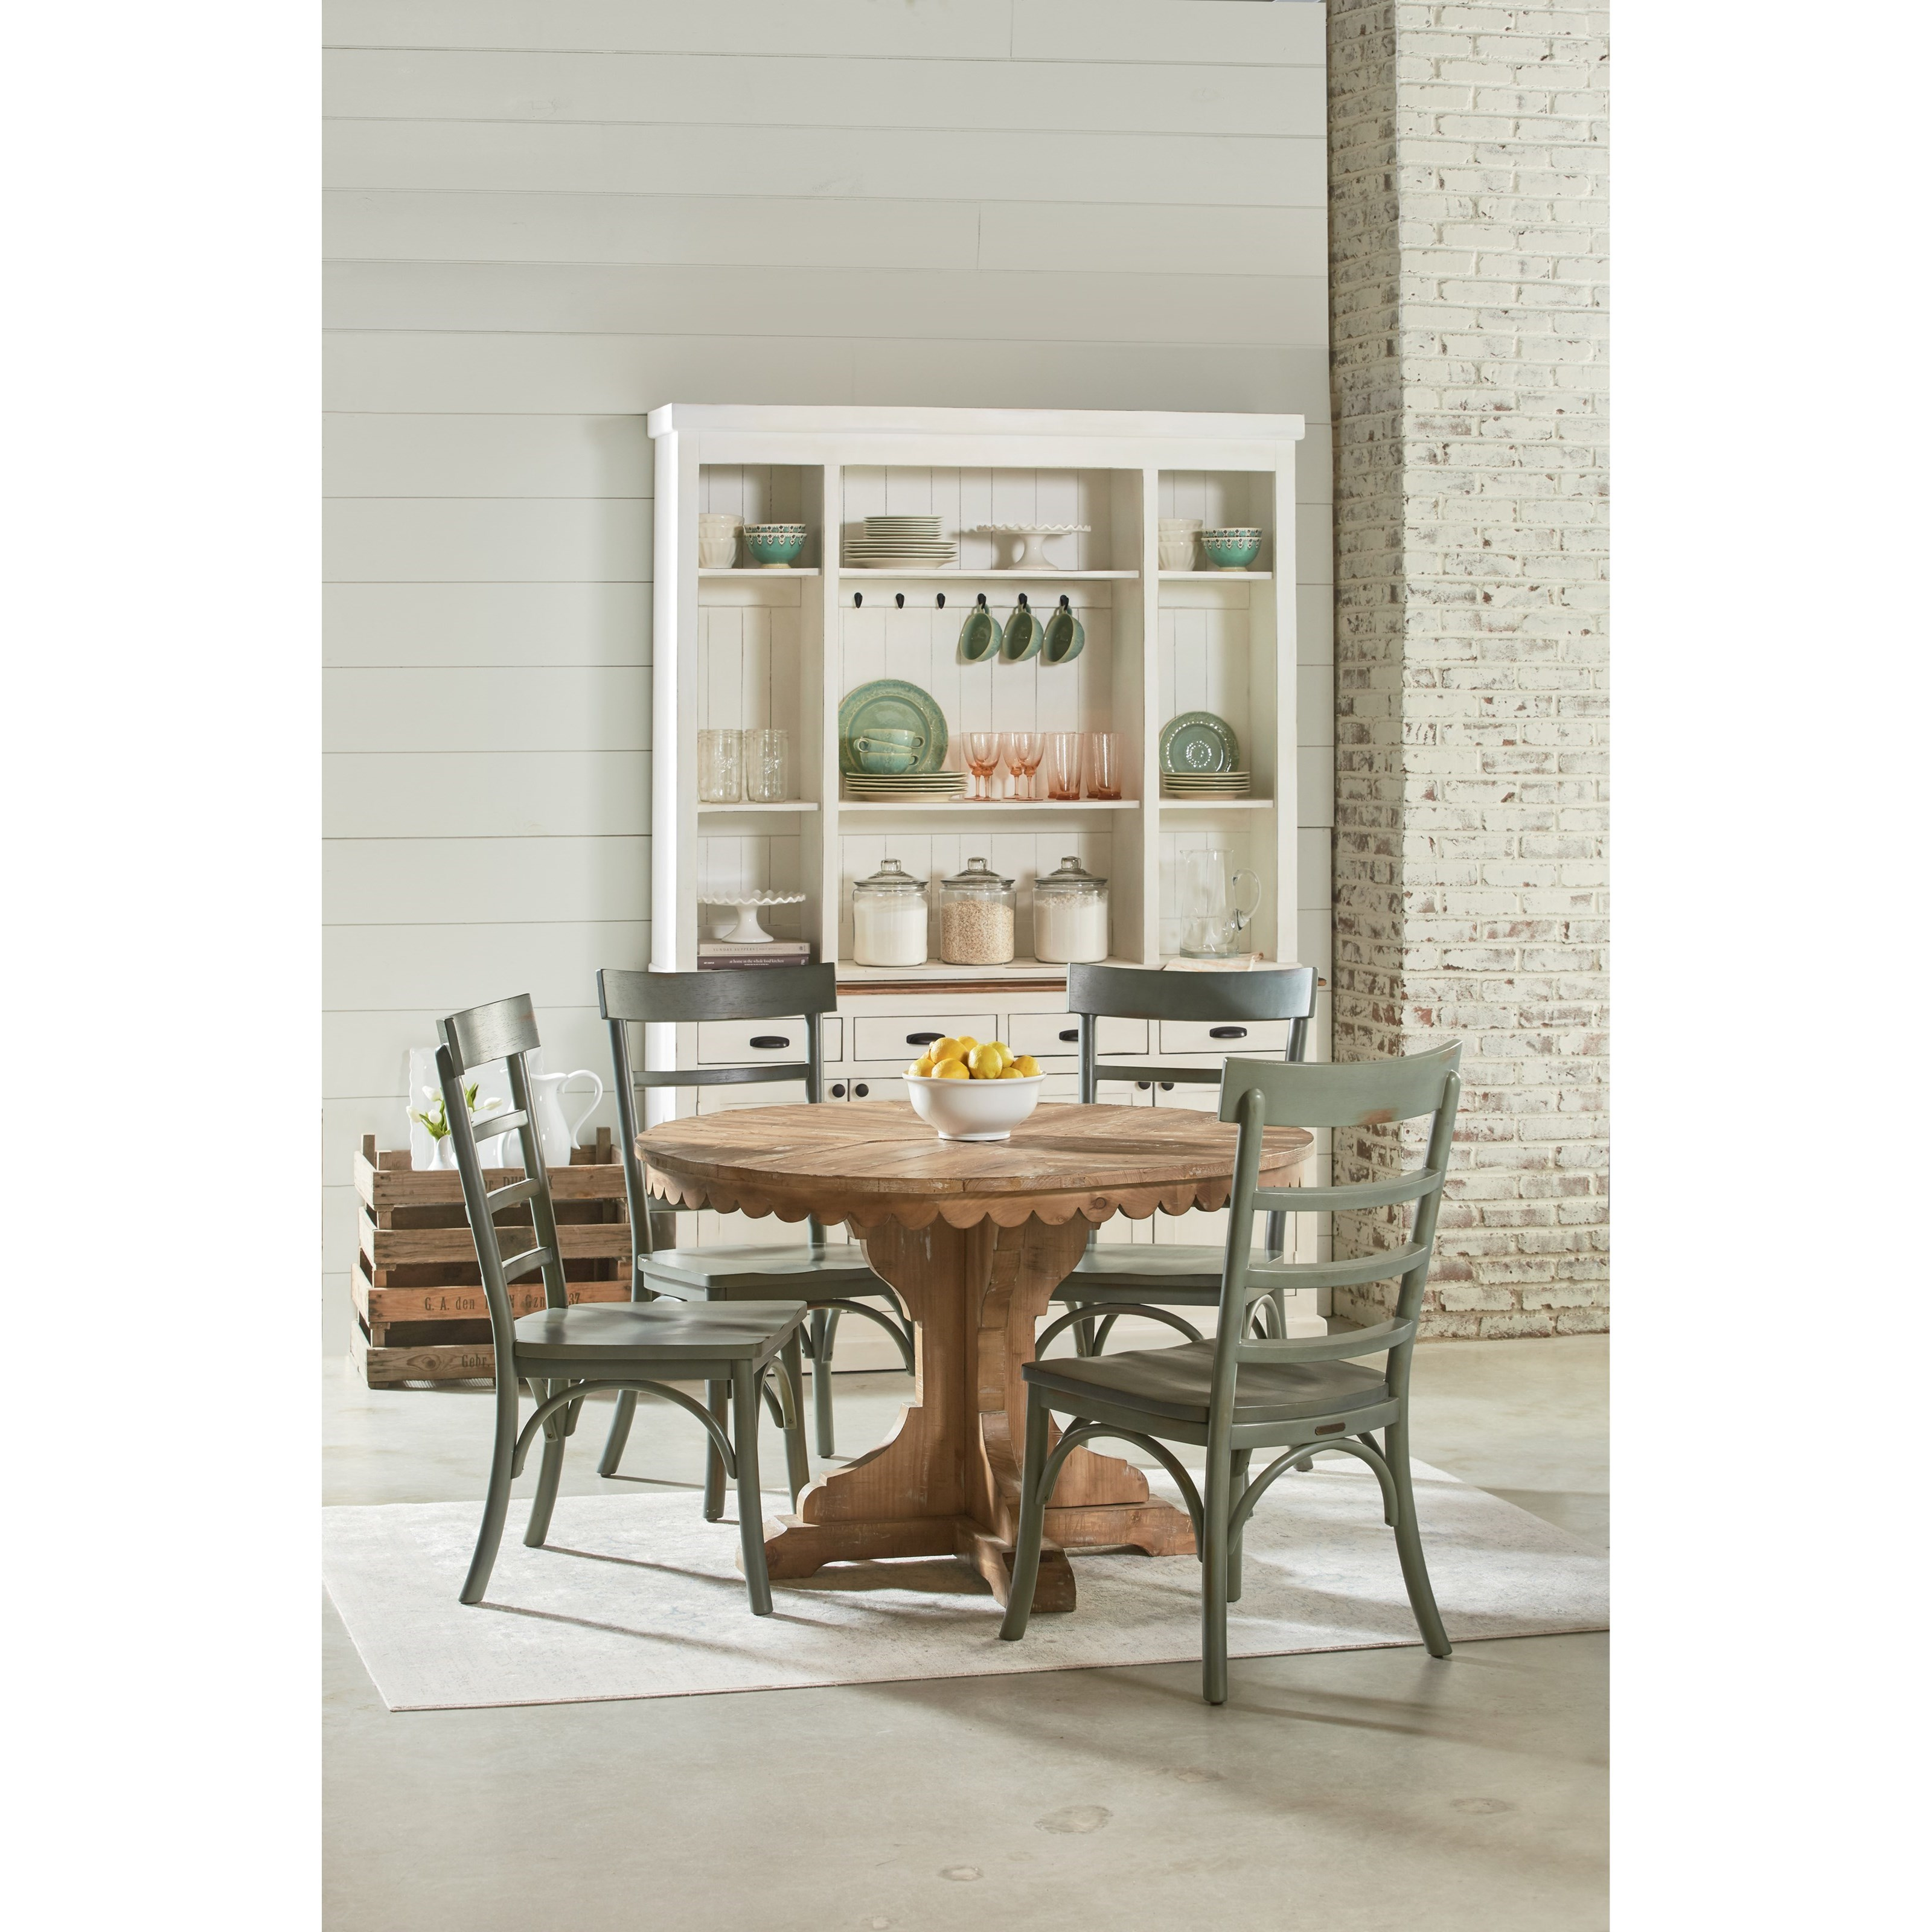 breakfast table and chairs set sling swivel rocker patio magnolia home by joanna gaines farmhouse five piece round chair